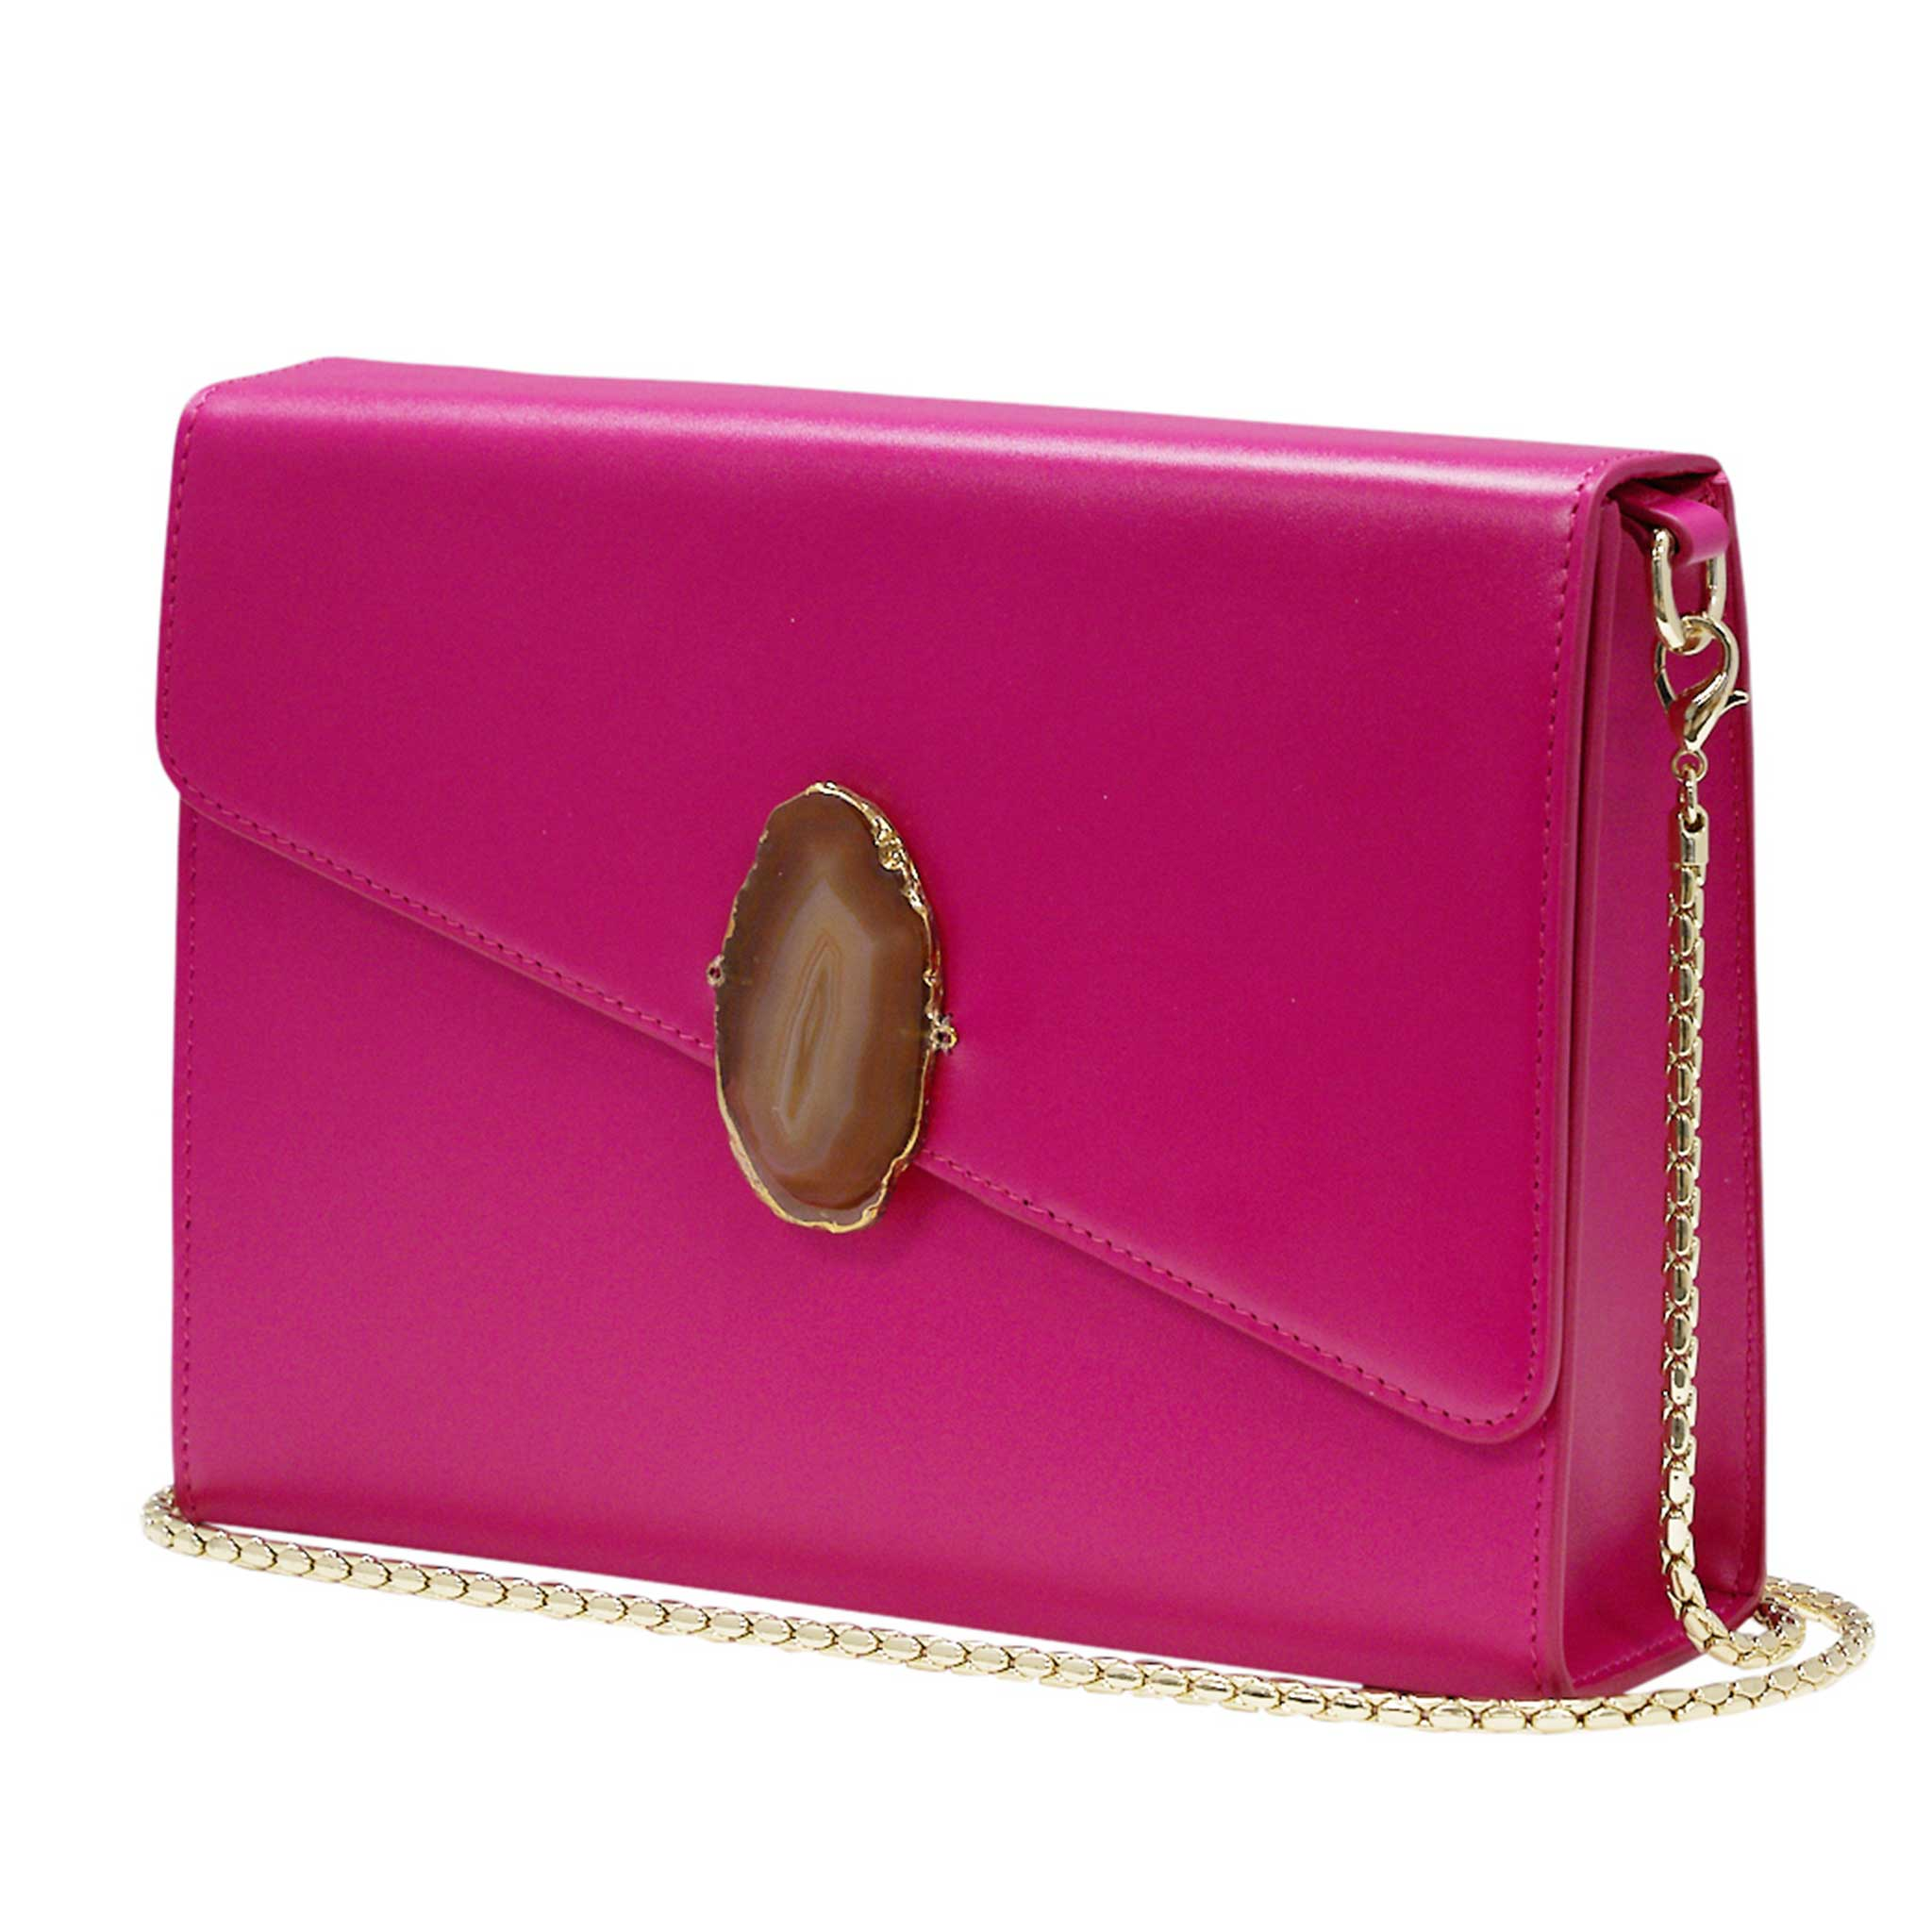 LOVED BAG - PINK RUBY LEATHER WITH BROWN AGATE - 1.01.001.030